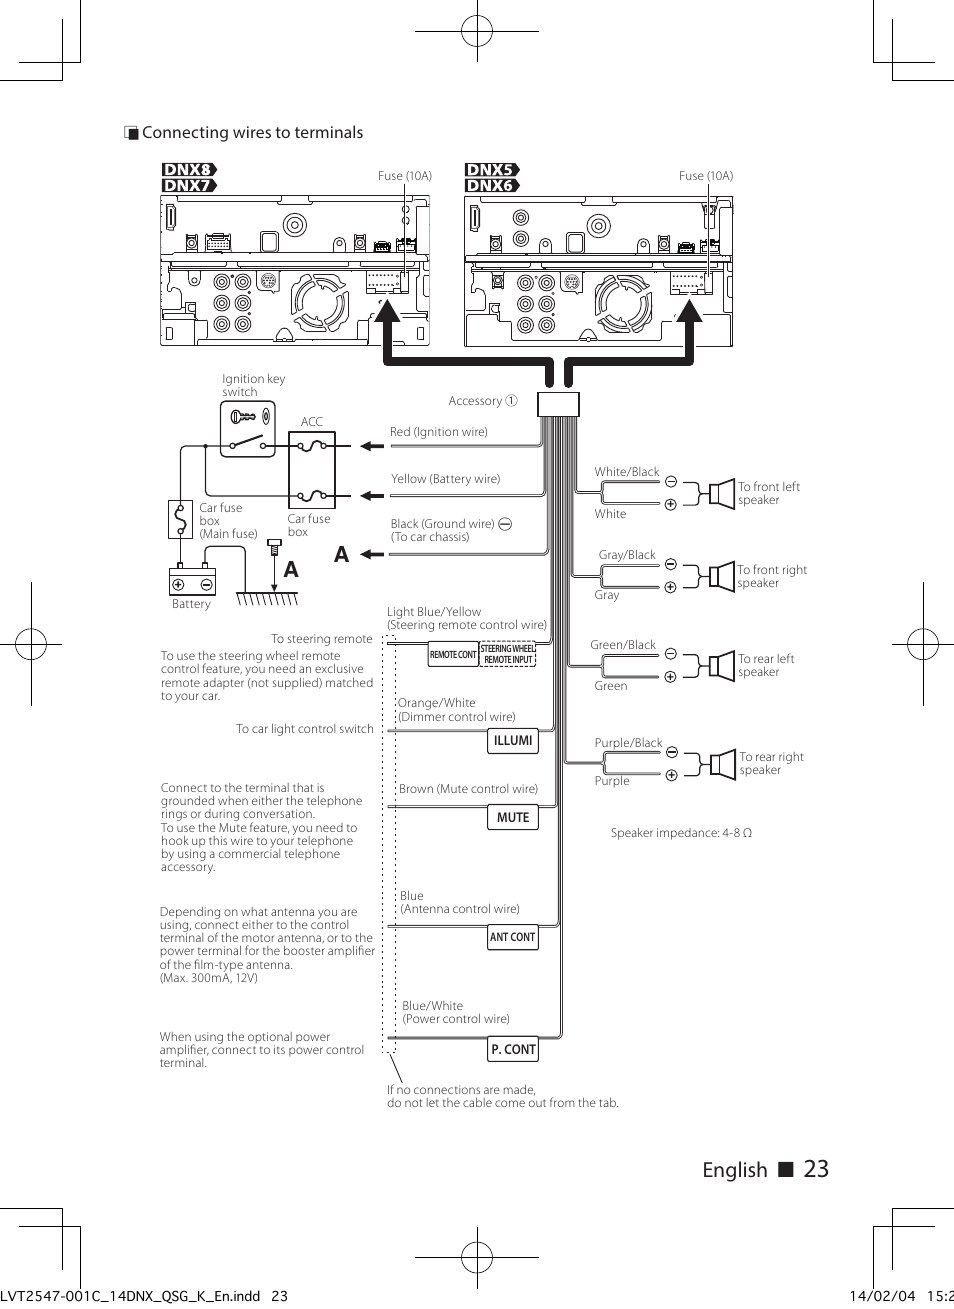 diagram] wiring kenwood diagram stereo no 90726293 full version hd quality no  90726293 - typestaplingwire.sciage-carottage-normandie.fr  wiring and fuse database